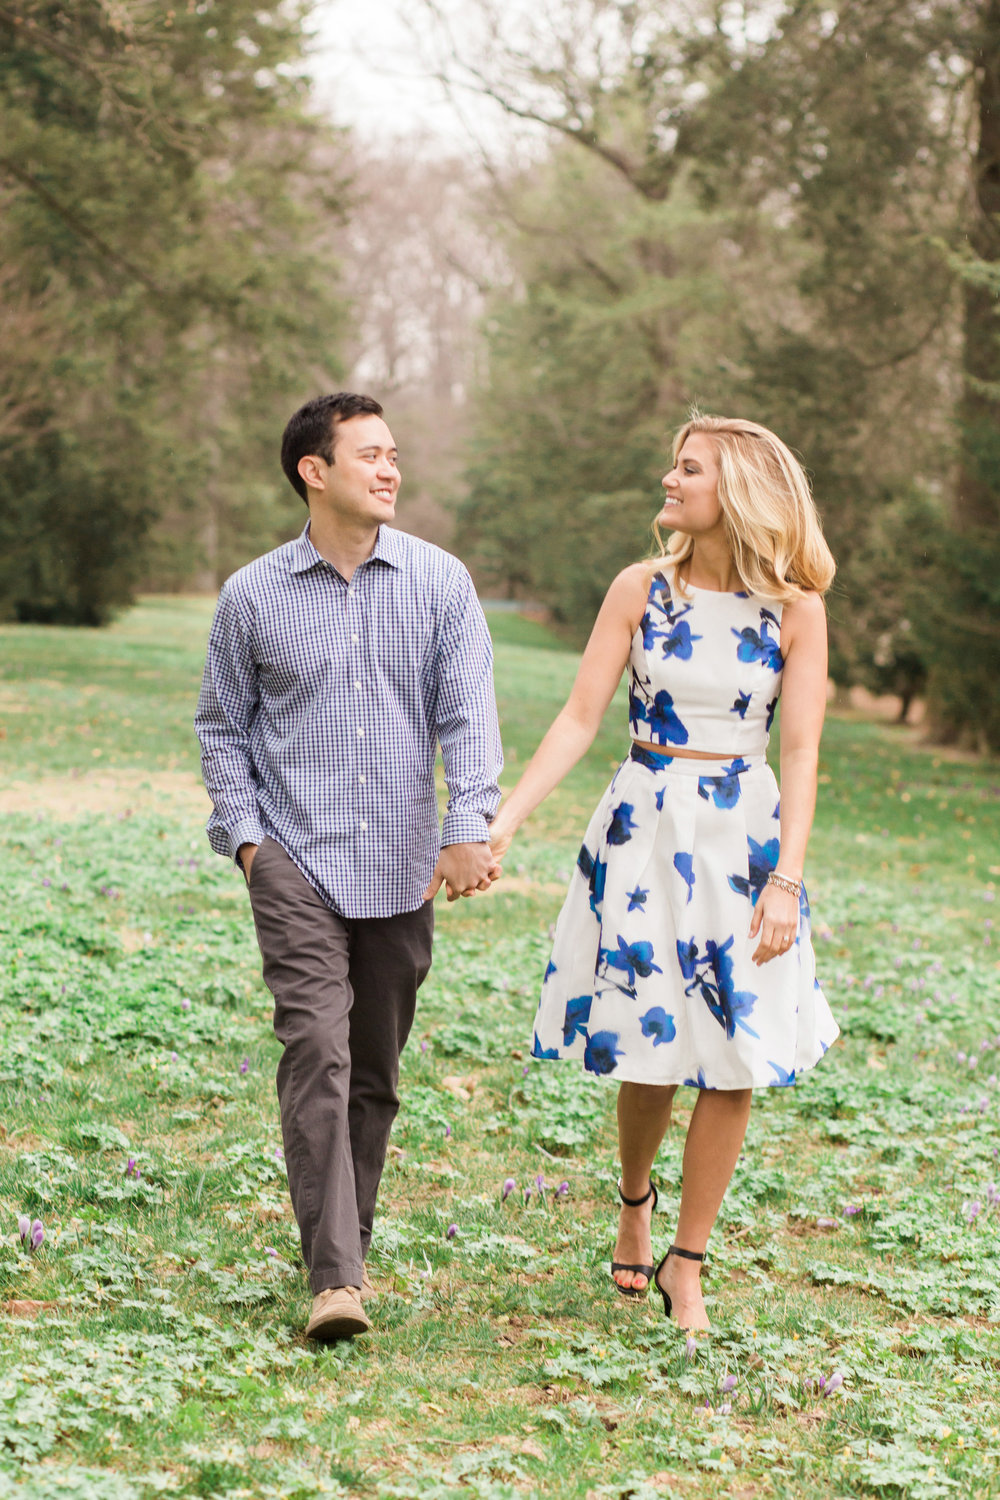 HNP-Chelsea-Jason-Longwood-Gardens-Spring-Engagement-Photos_058.jpg